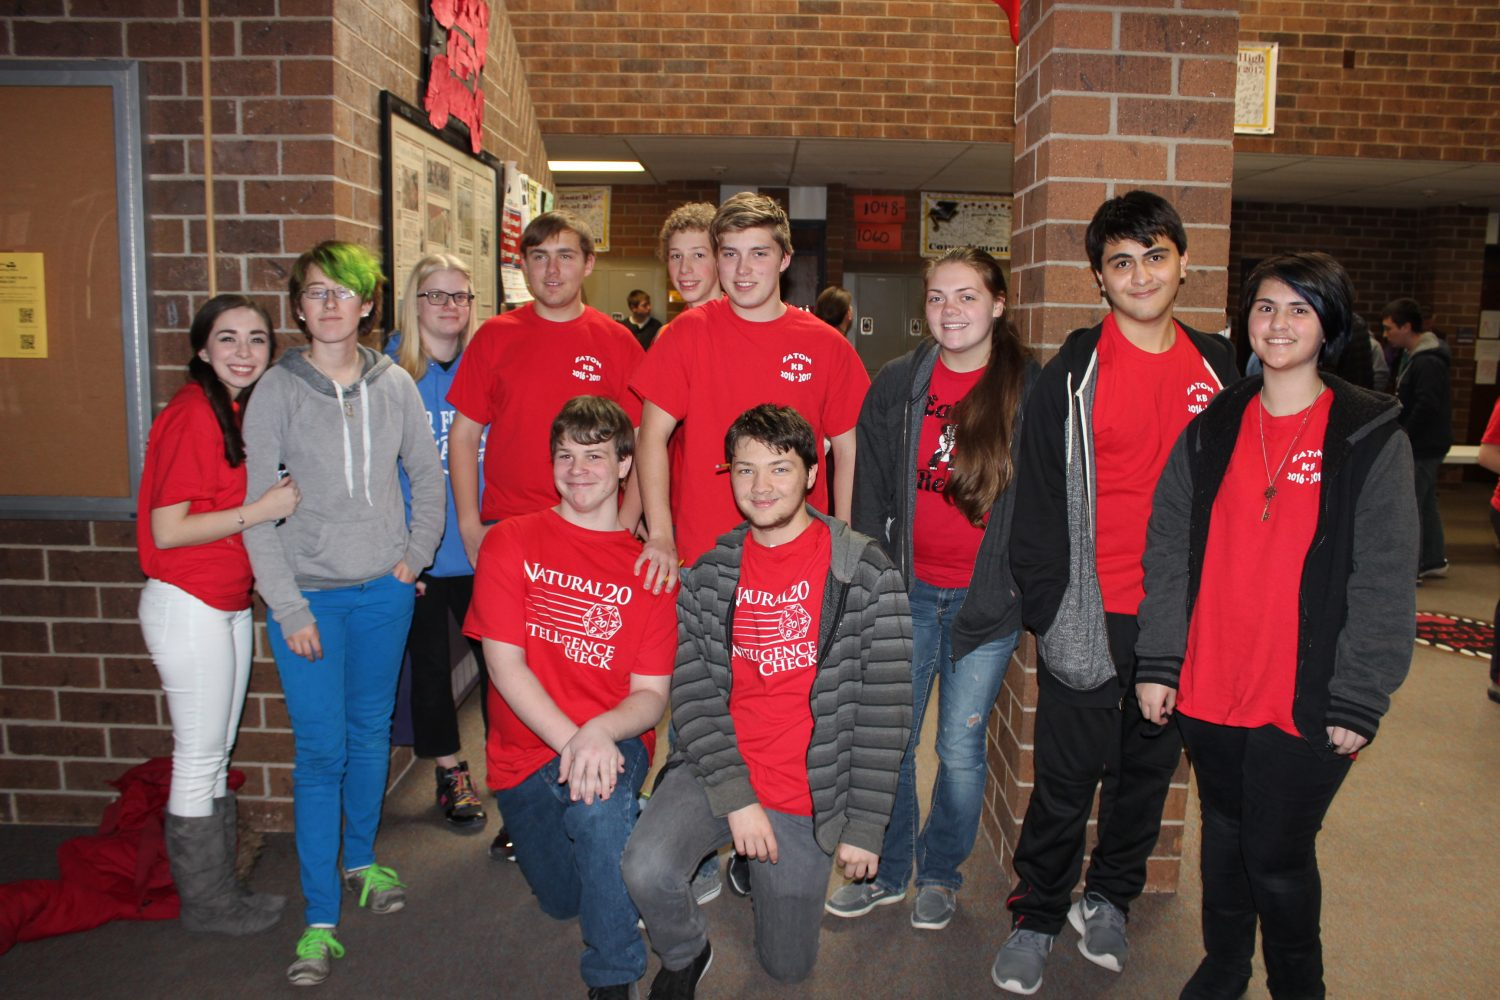 Knowledge Bowl competes against schools in different leagues